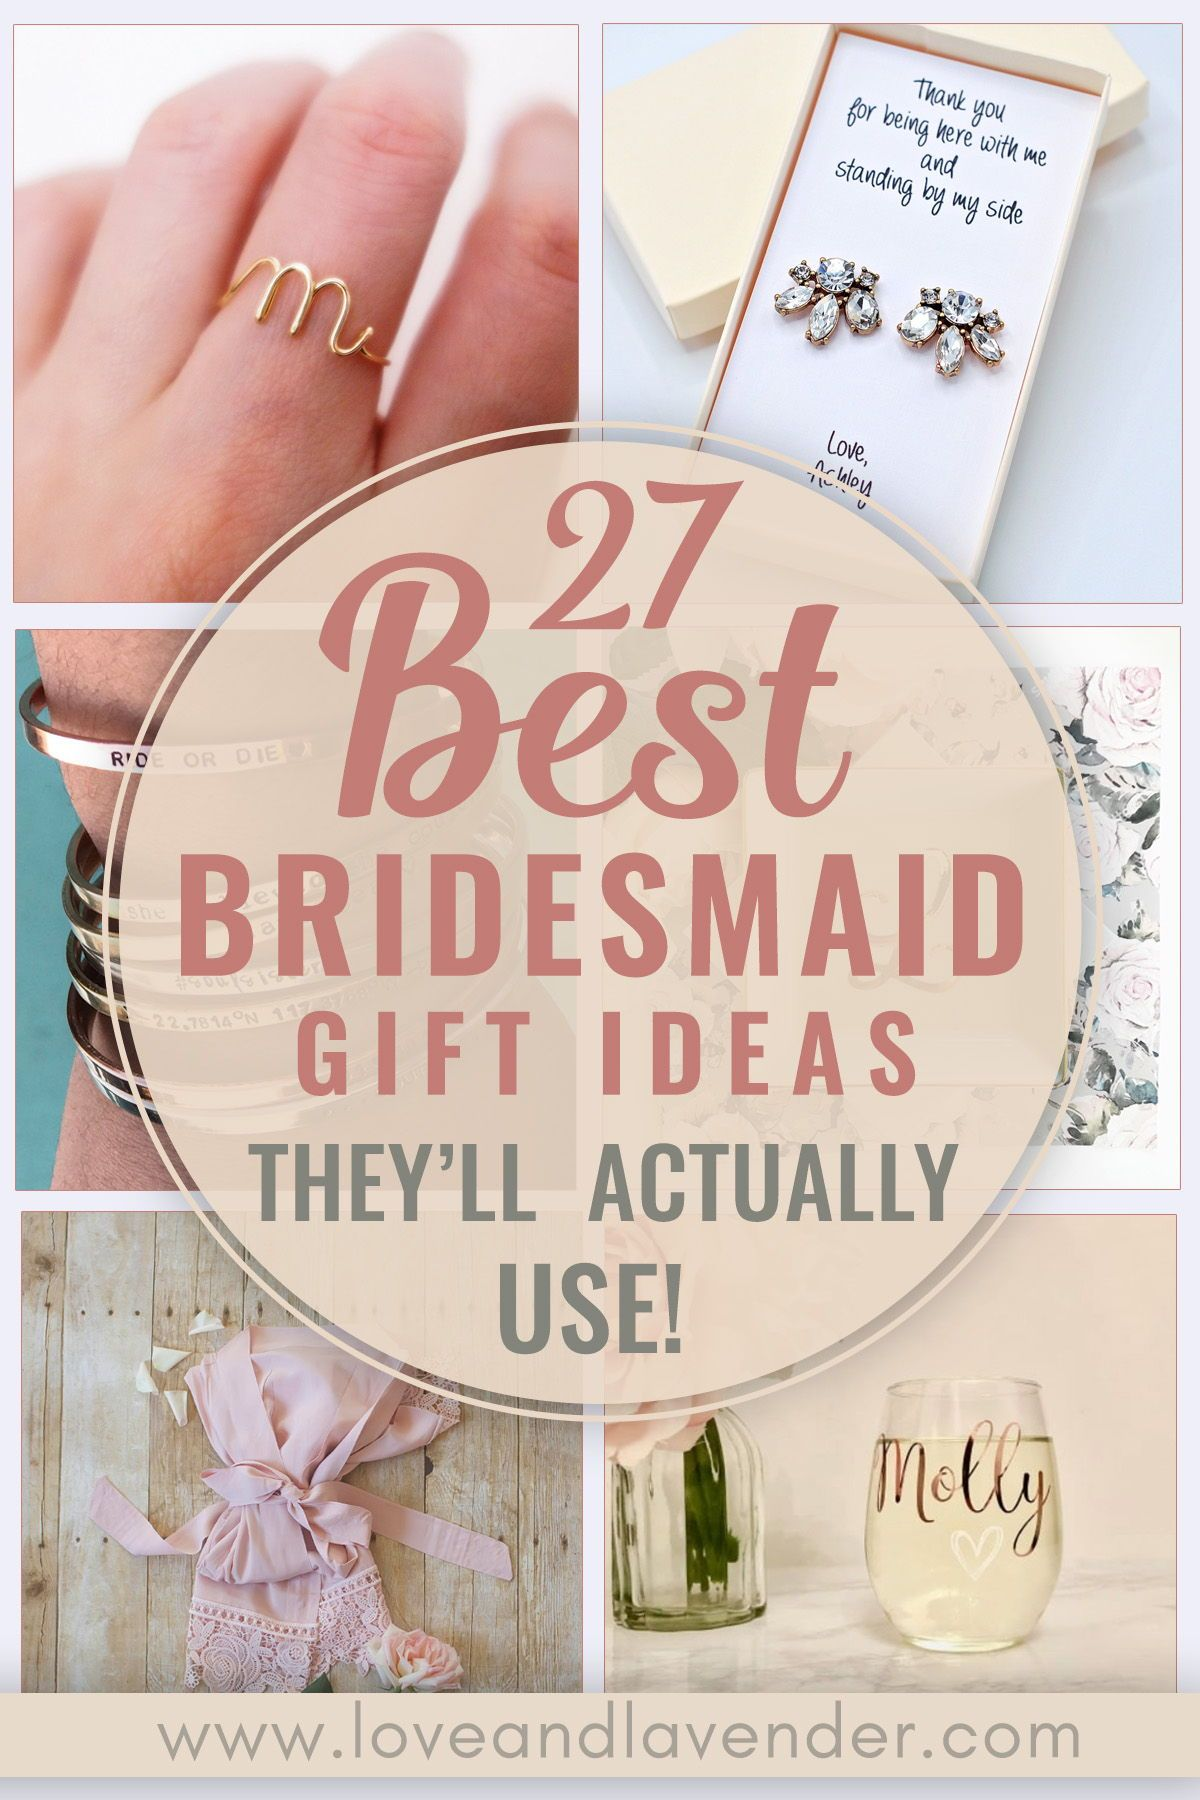 27 Best Bridesmaid Gift Ideas They Ll Actually Use Wedding Gifts For Bridesmaids Gifts For Wedding Party Best Bridesmaid Gifts